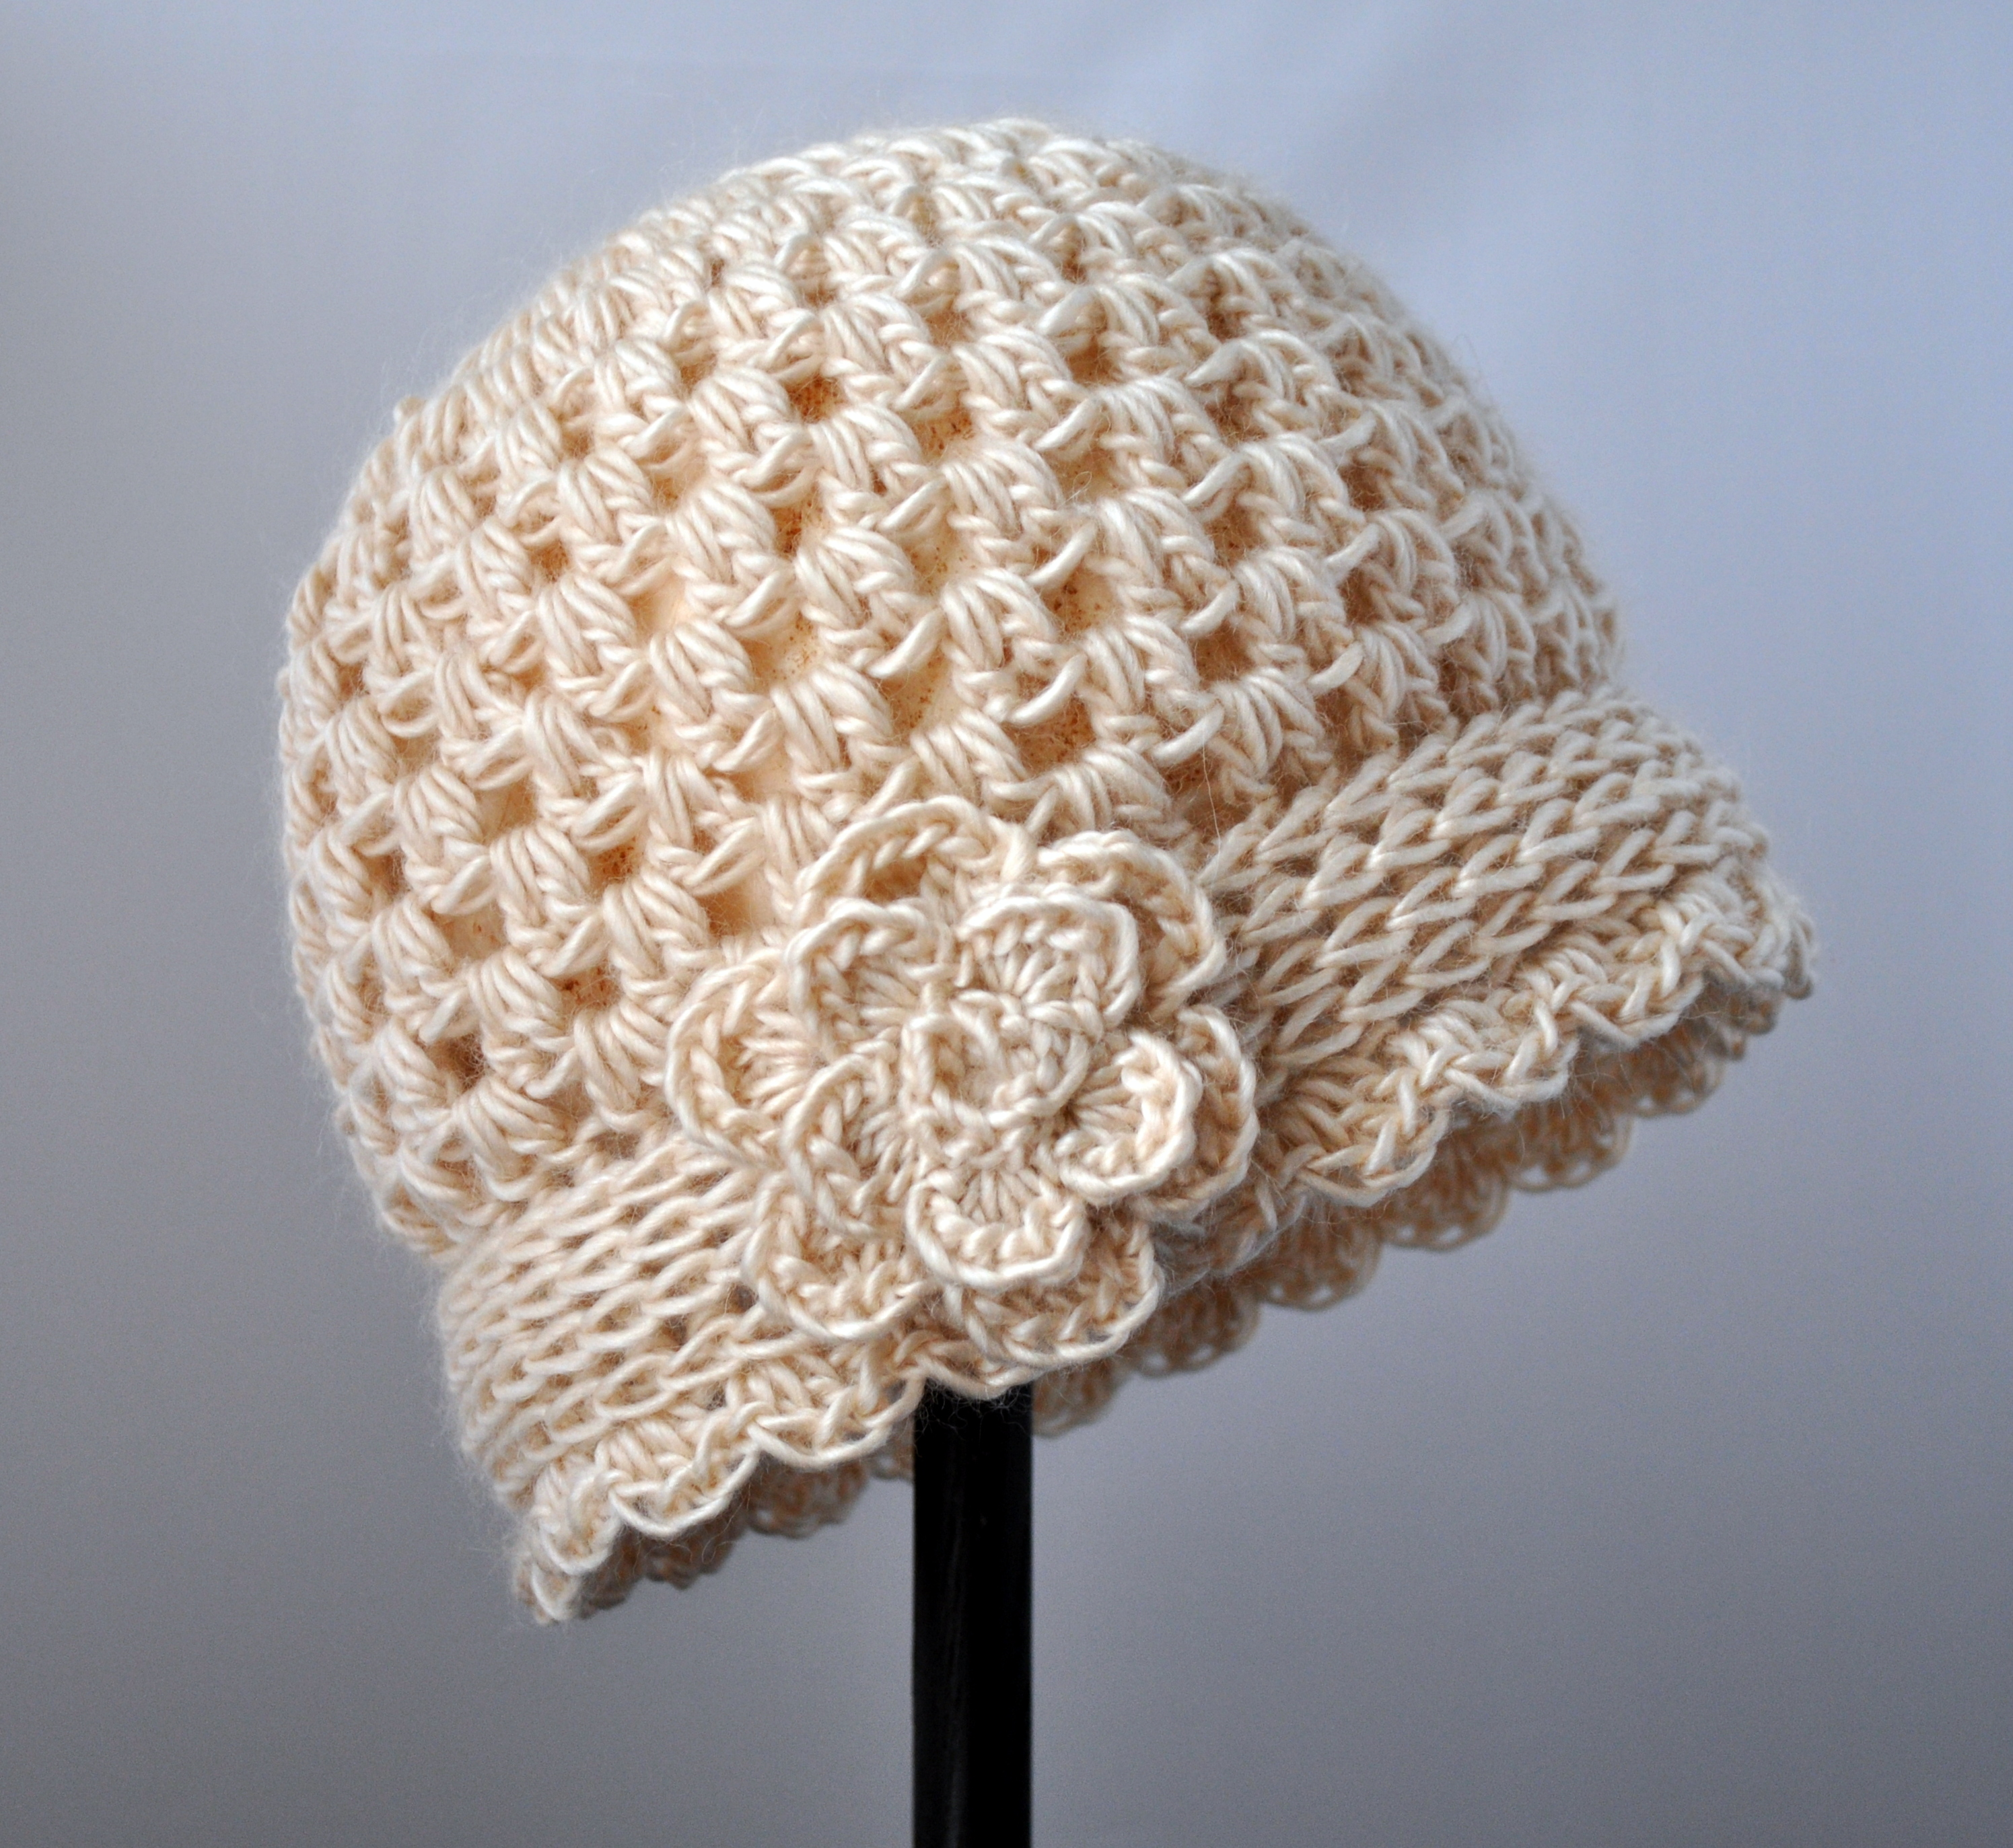 Crochet Stitches Gallery : Crochet Patterns